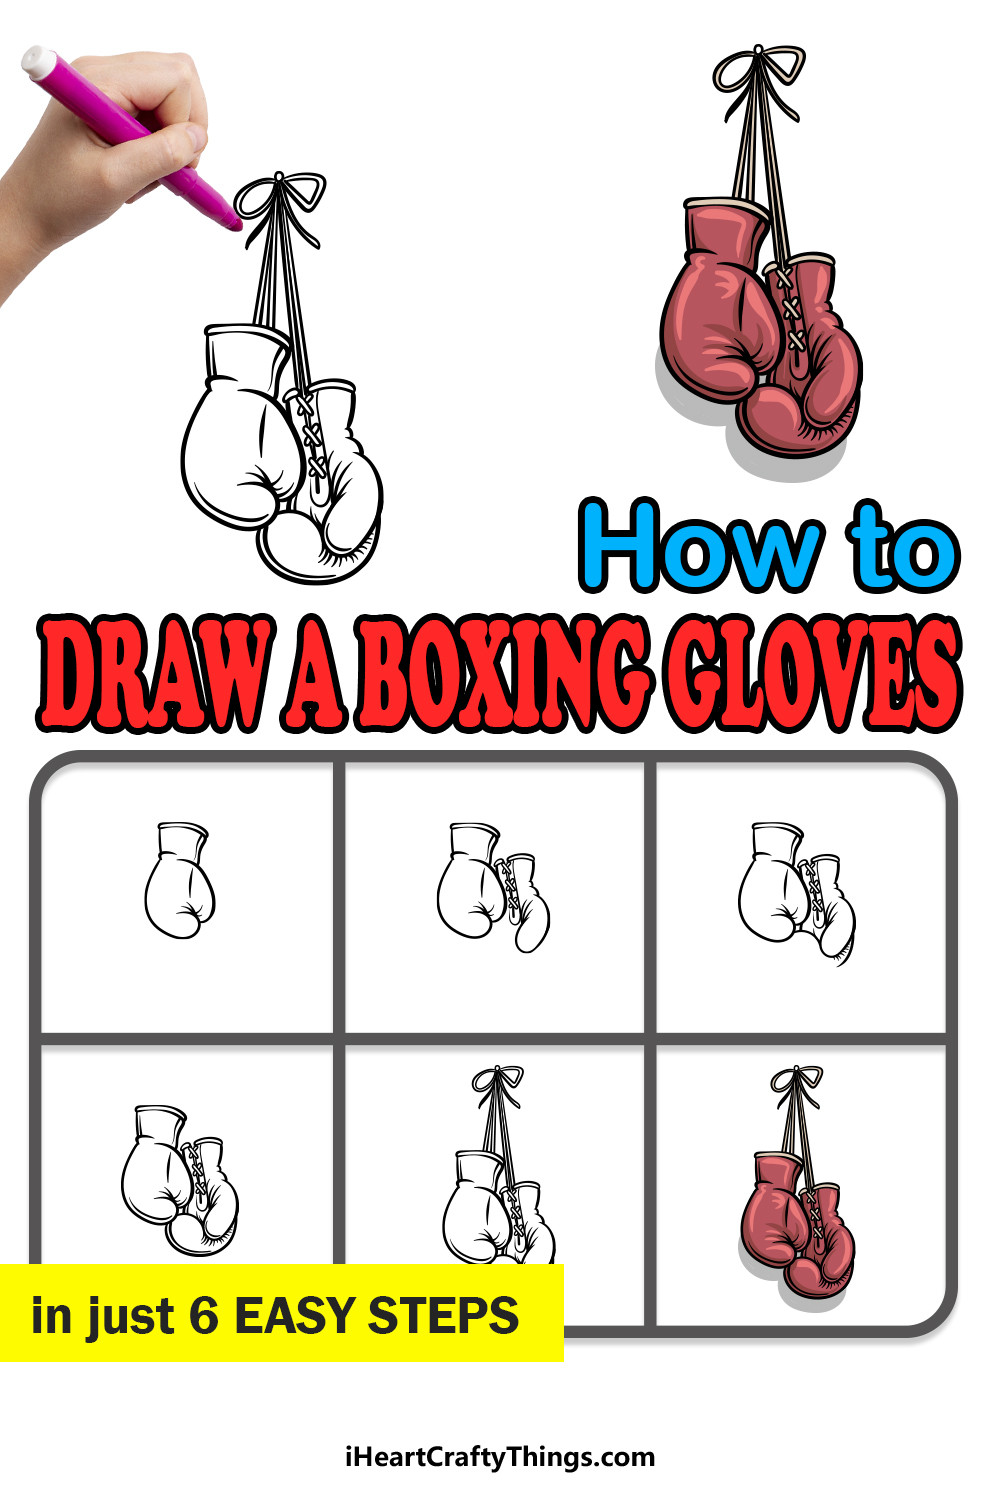 how to draw a boxing gloves in 6 easy steps